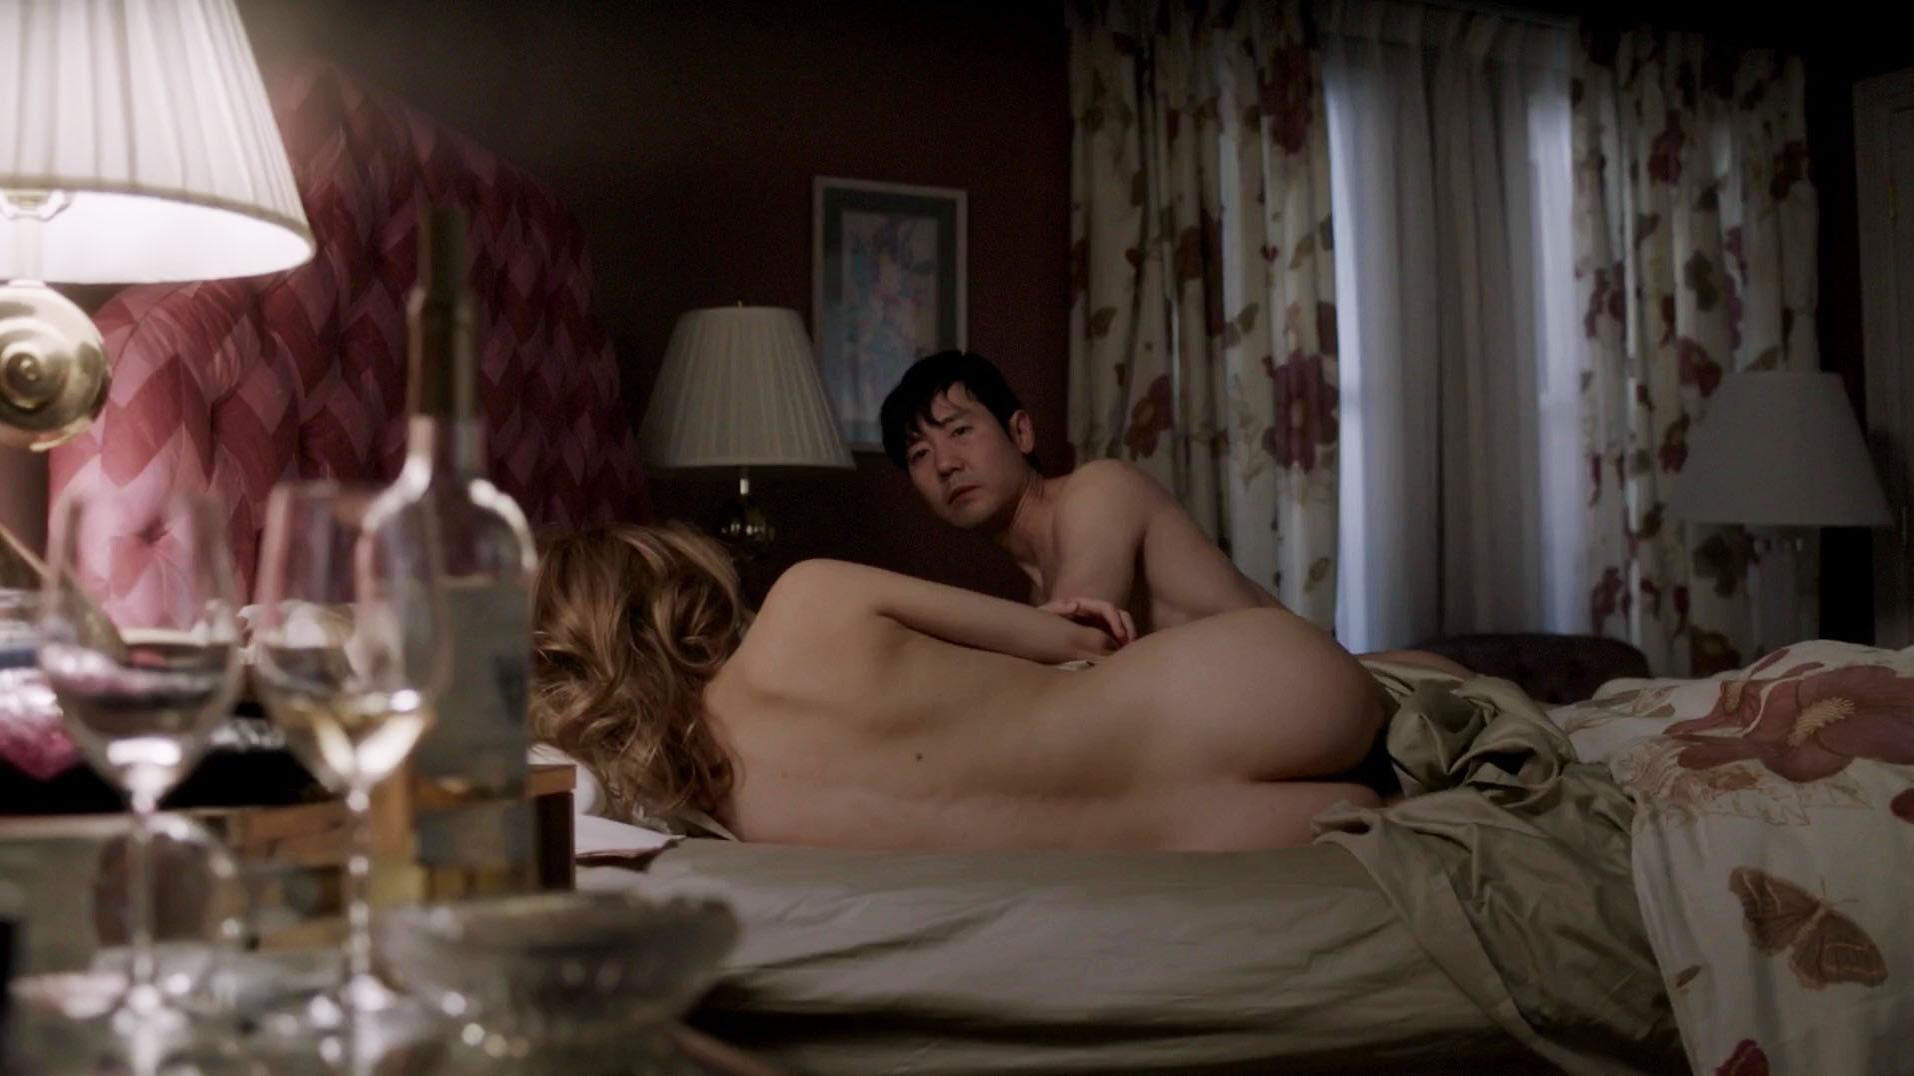 Keri Russell nude - The Americans s04e09 (2016)